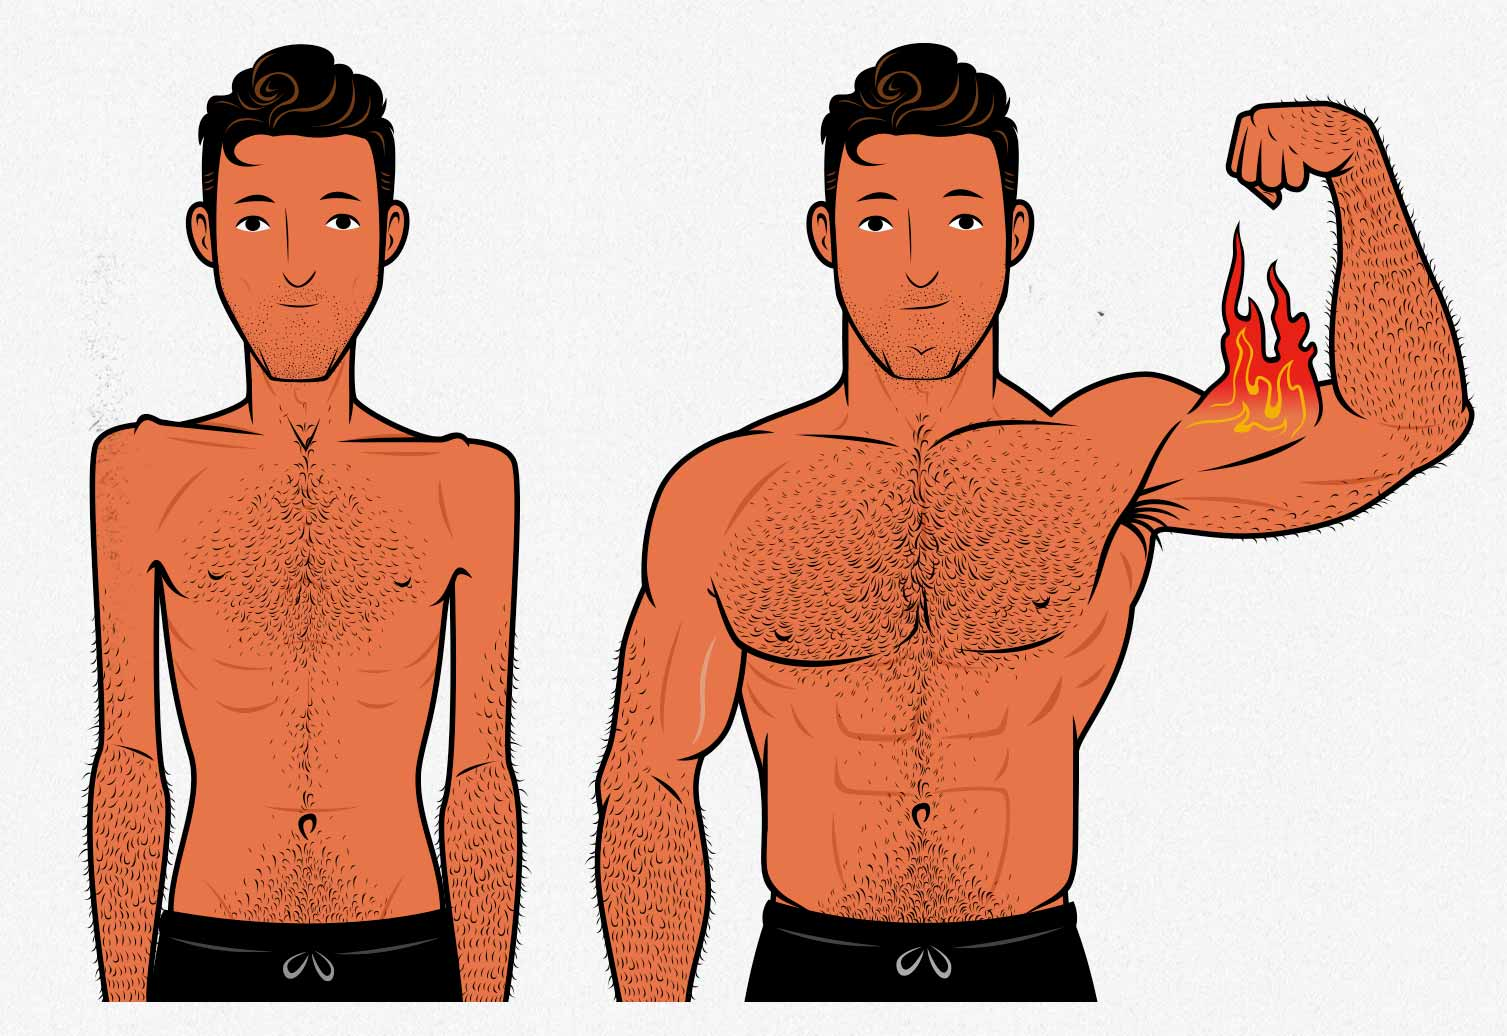 Illustration of a skinny guy bulking up leanly.